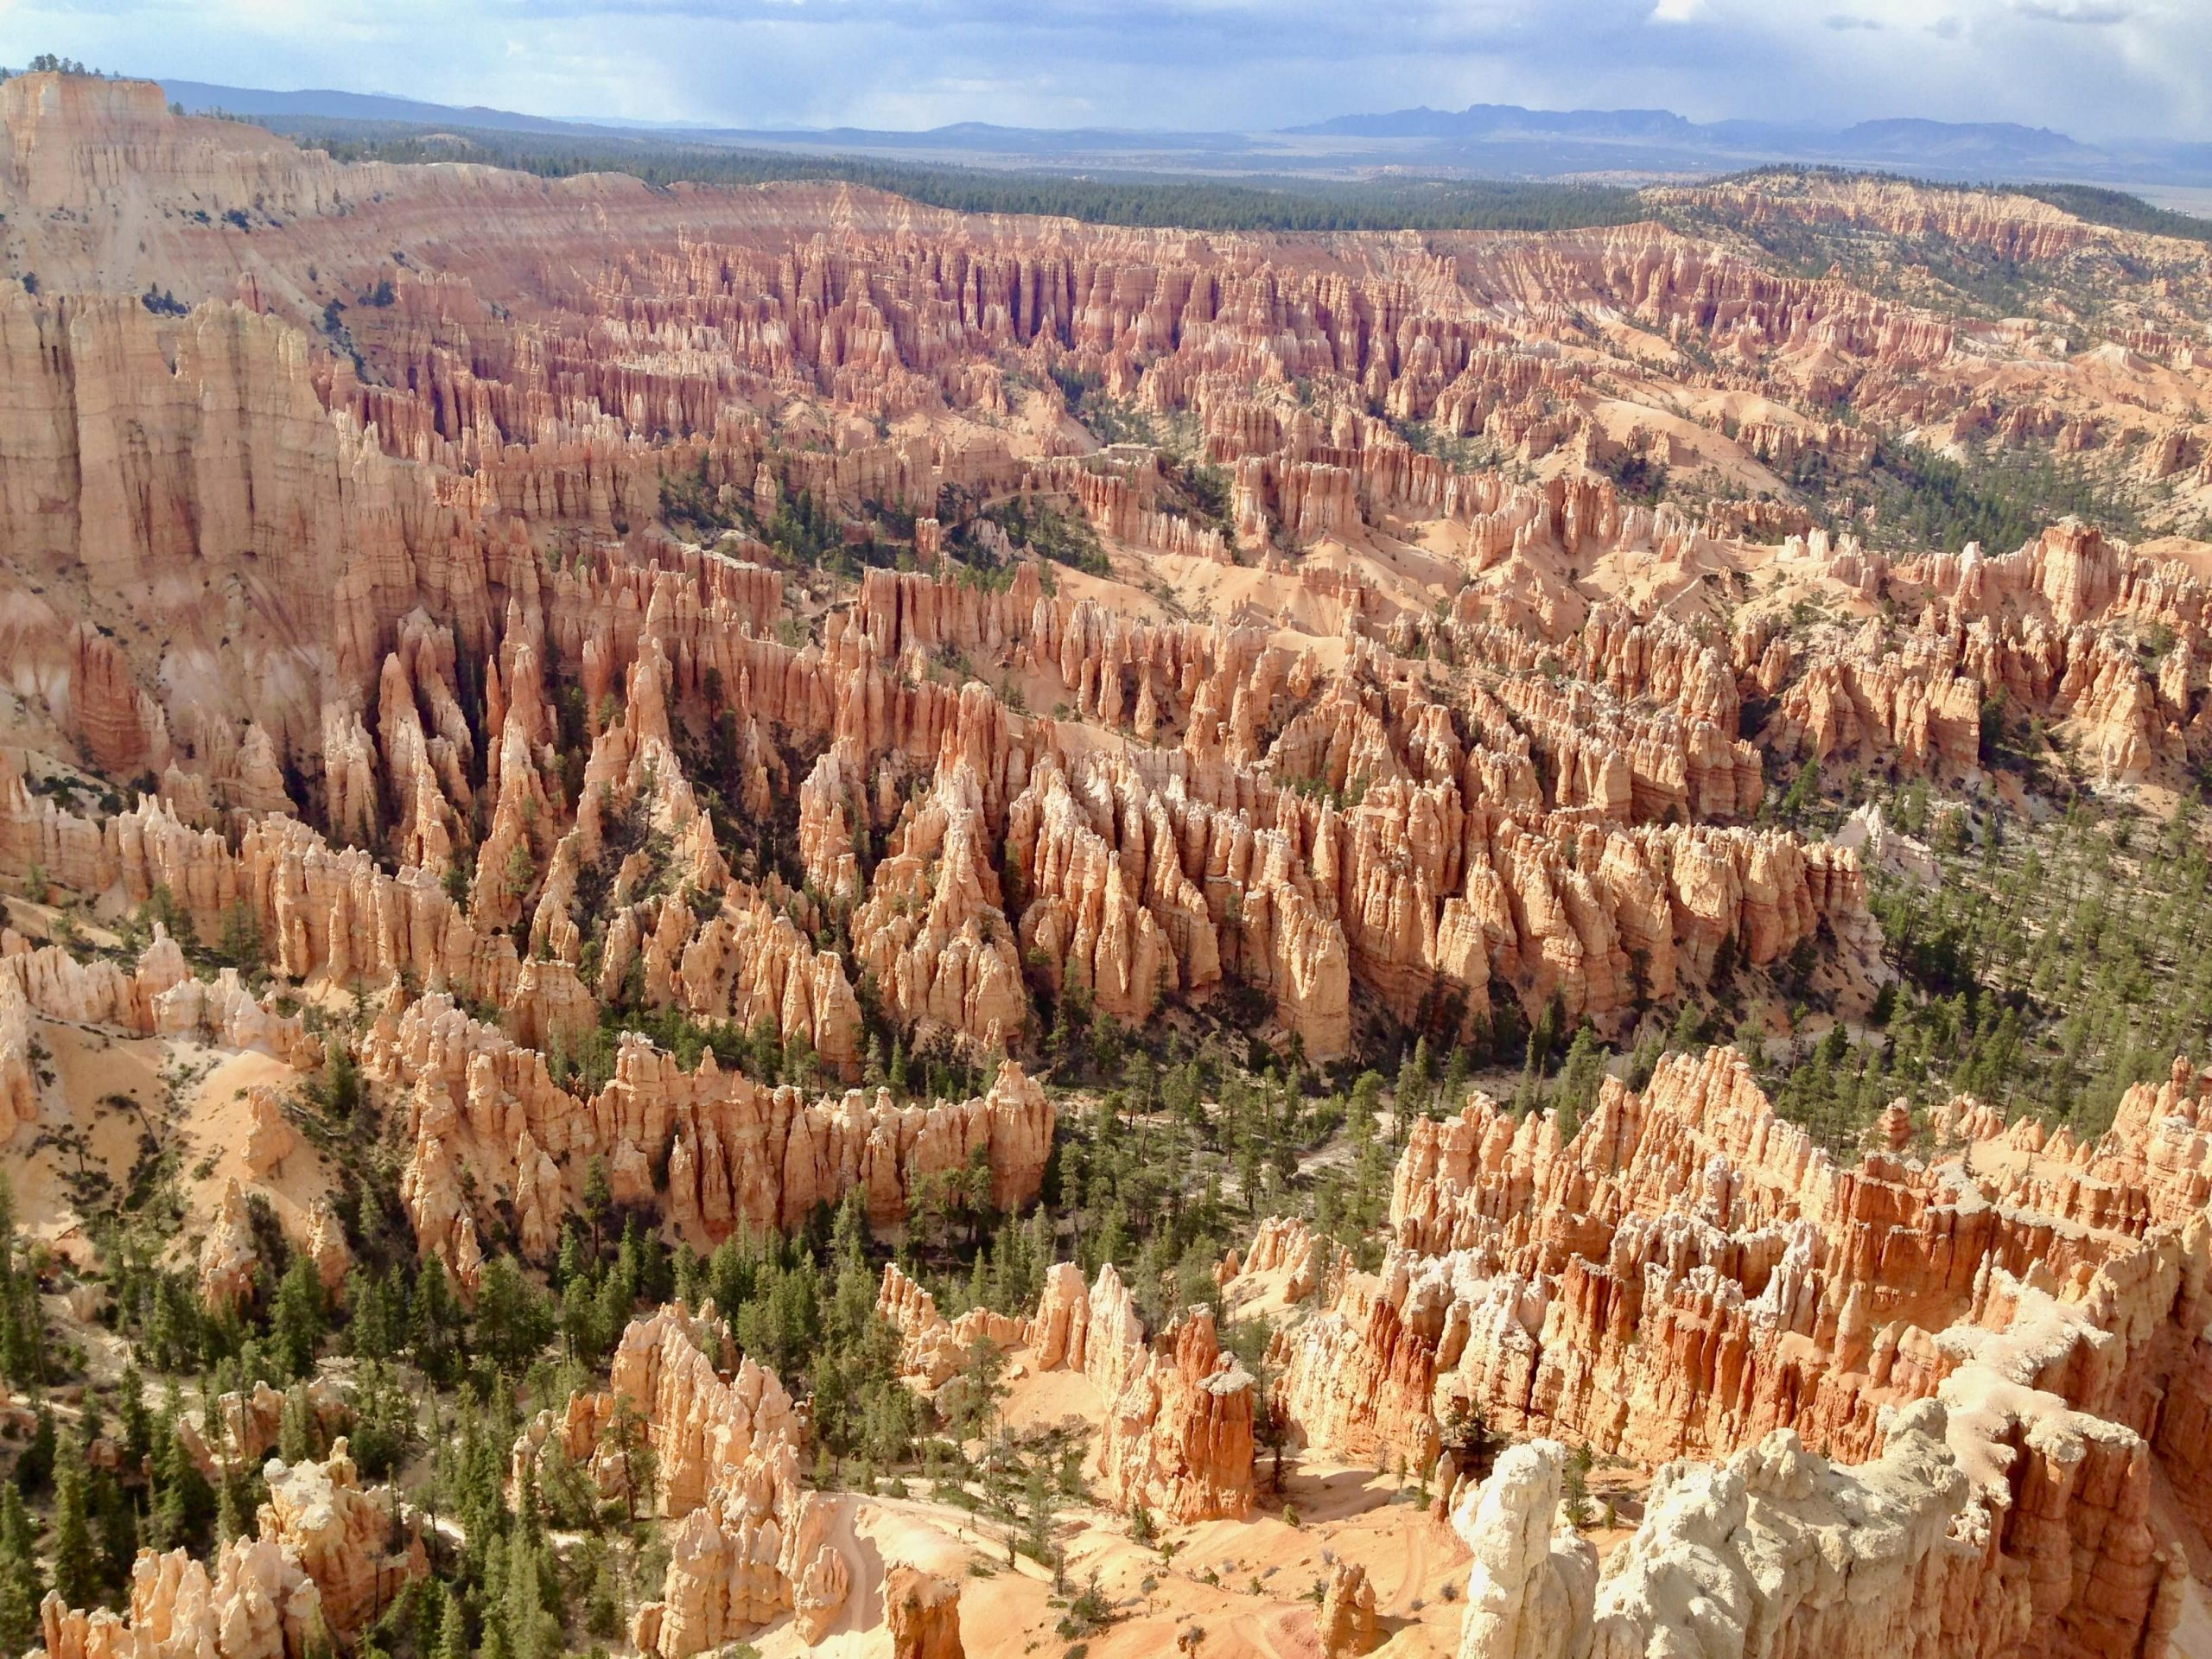 View of Bryce Canyon National Park in Utah